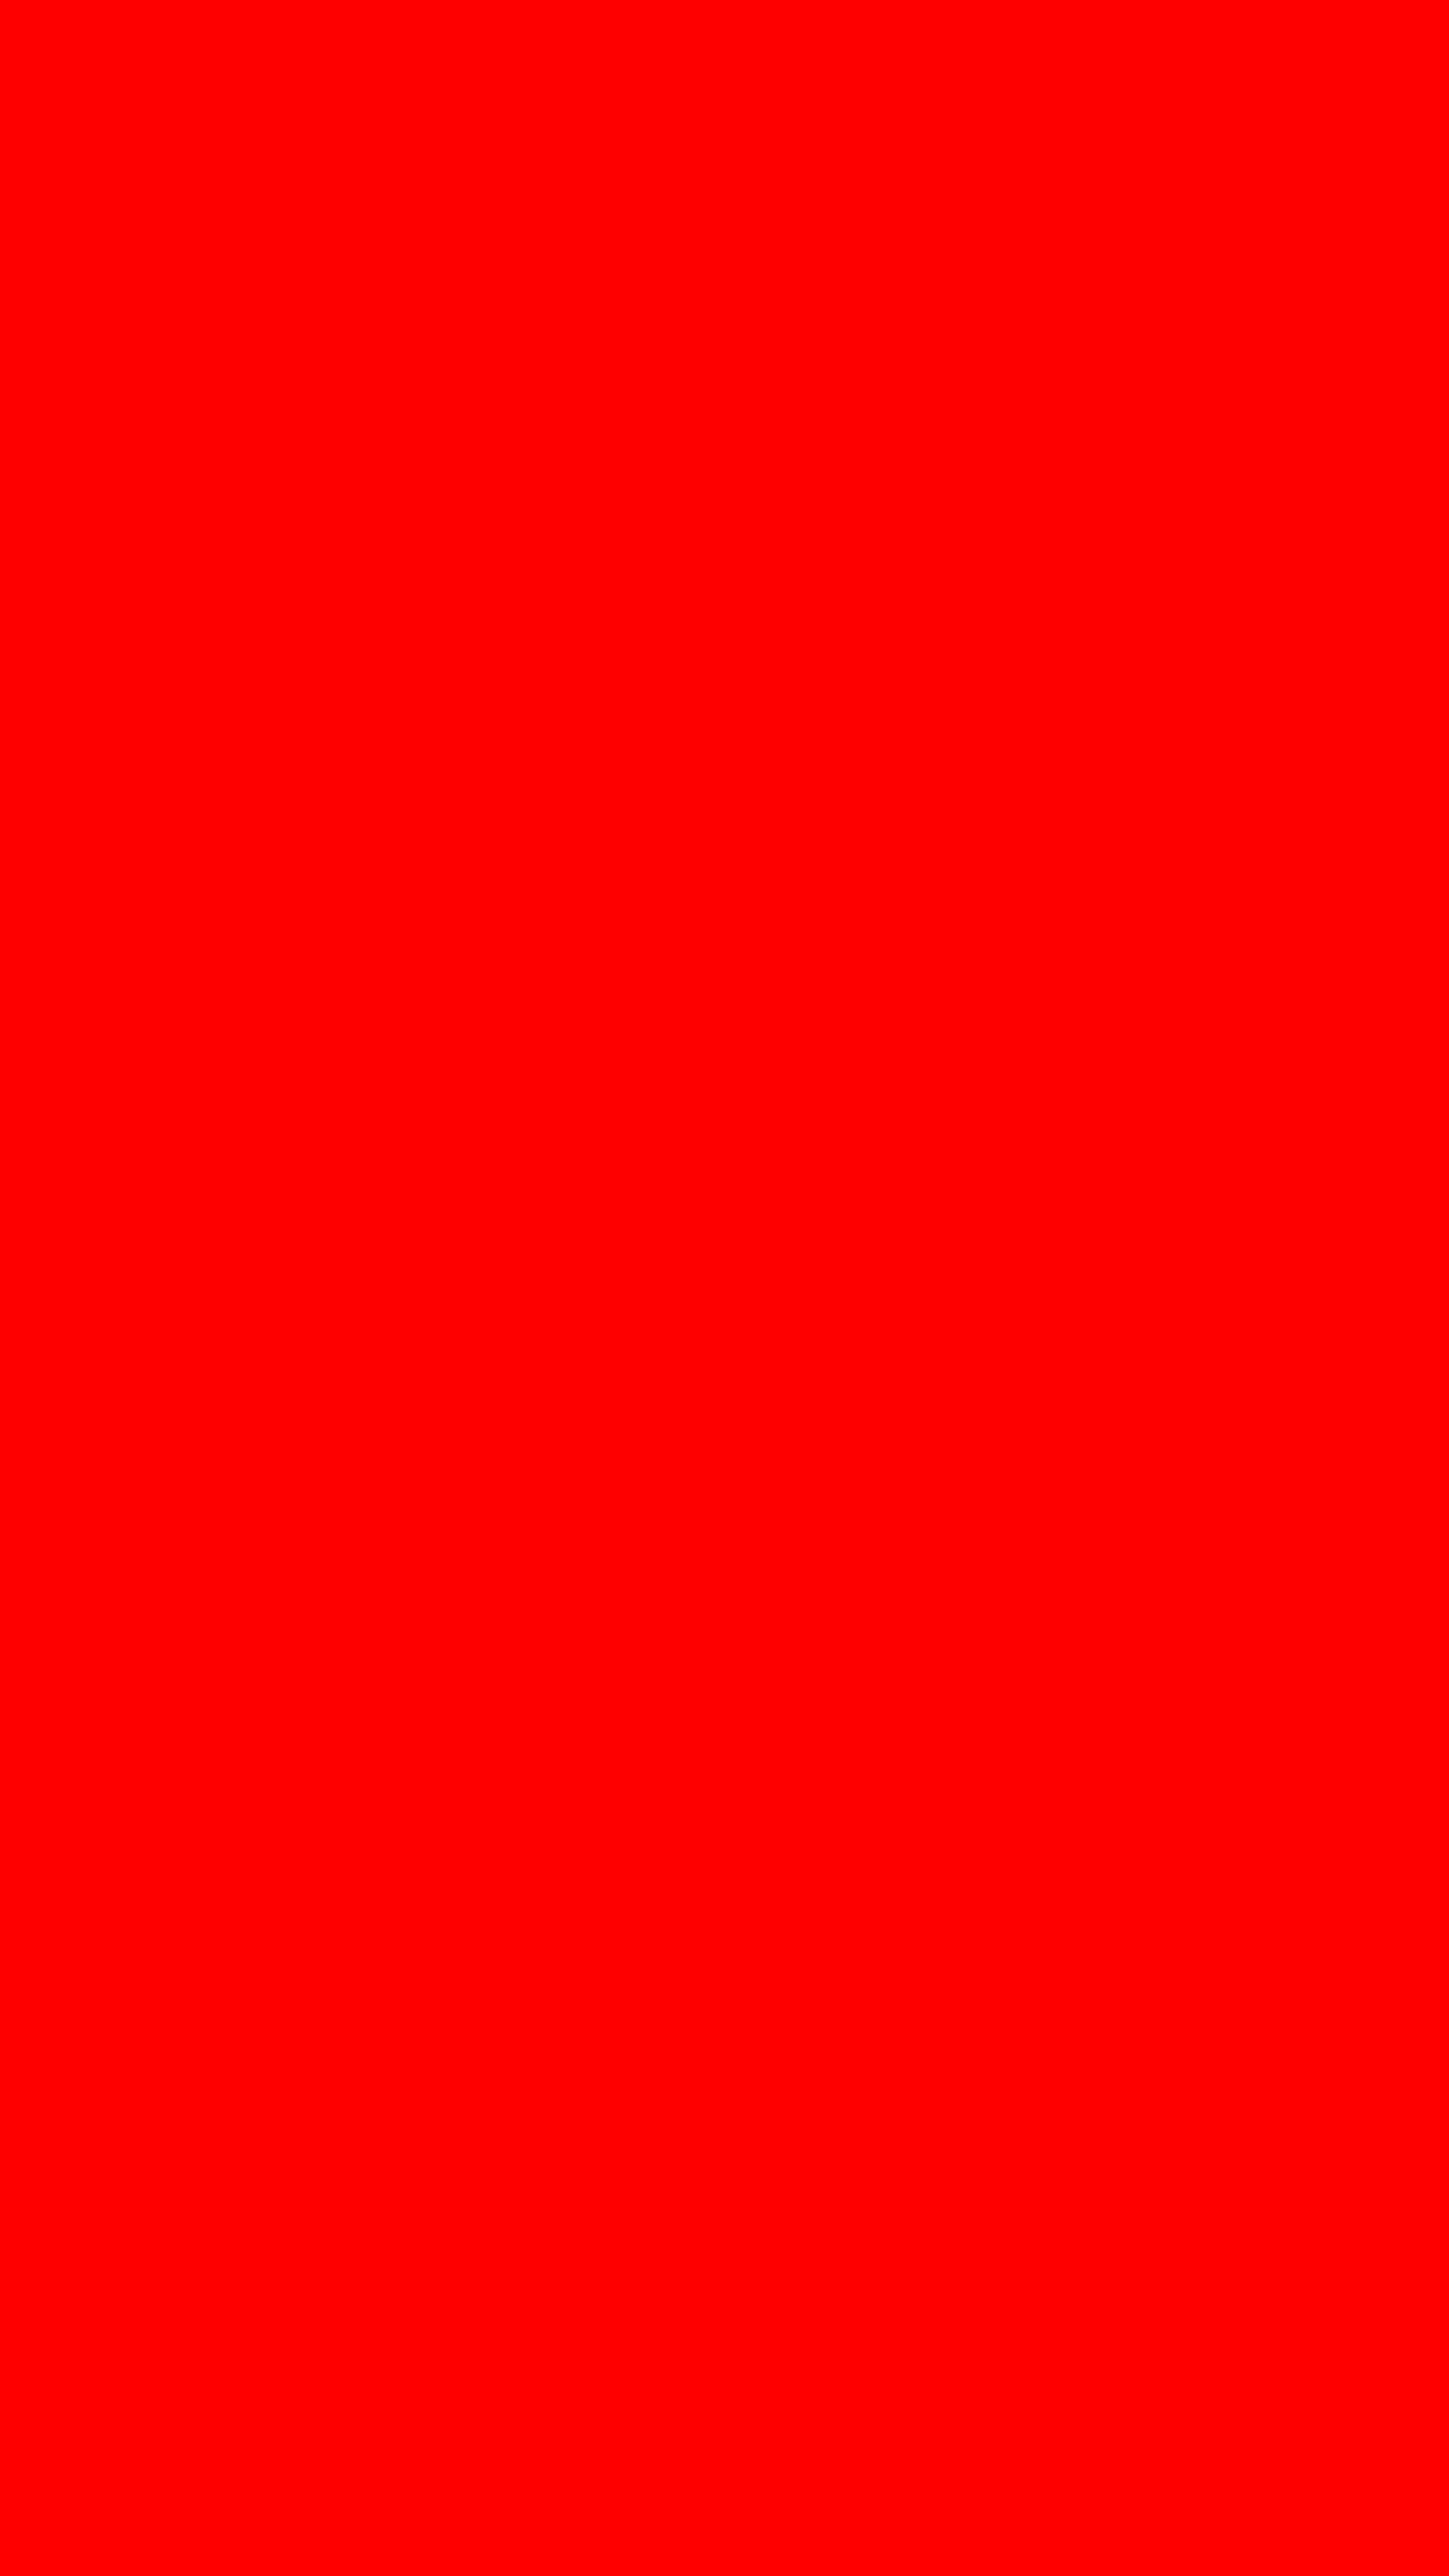 Red Solid Color Background Wallpaper